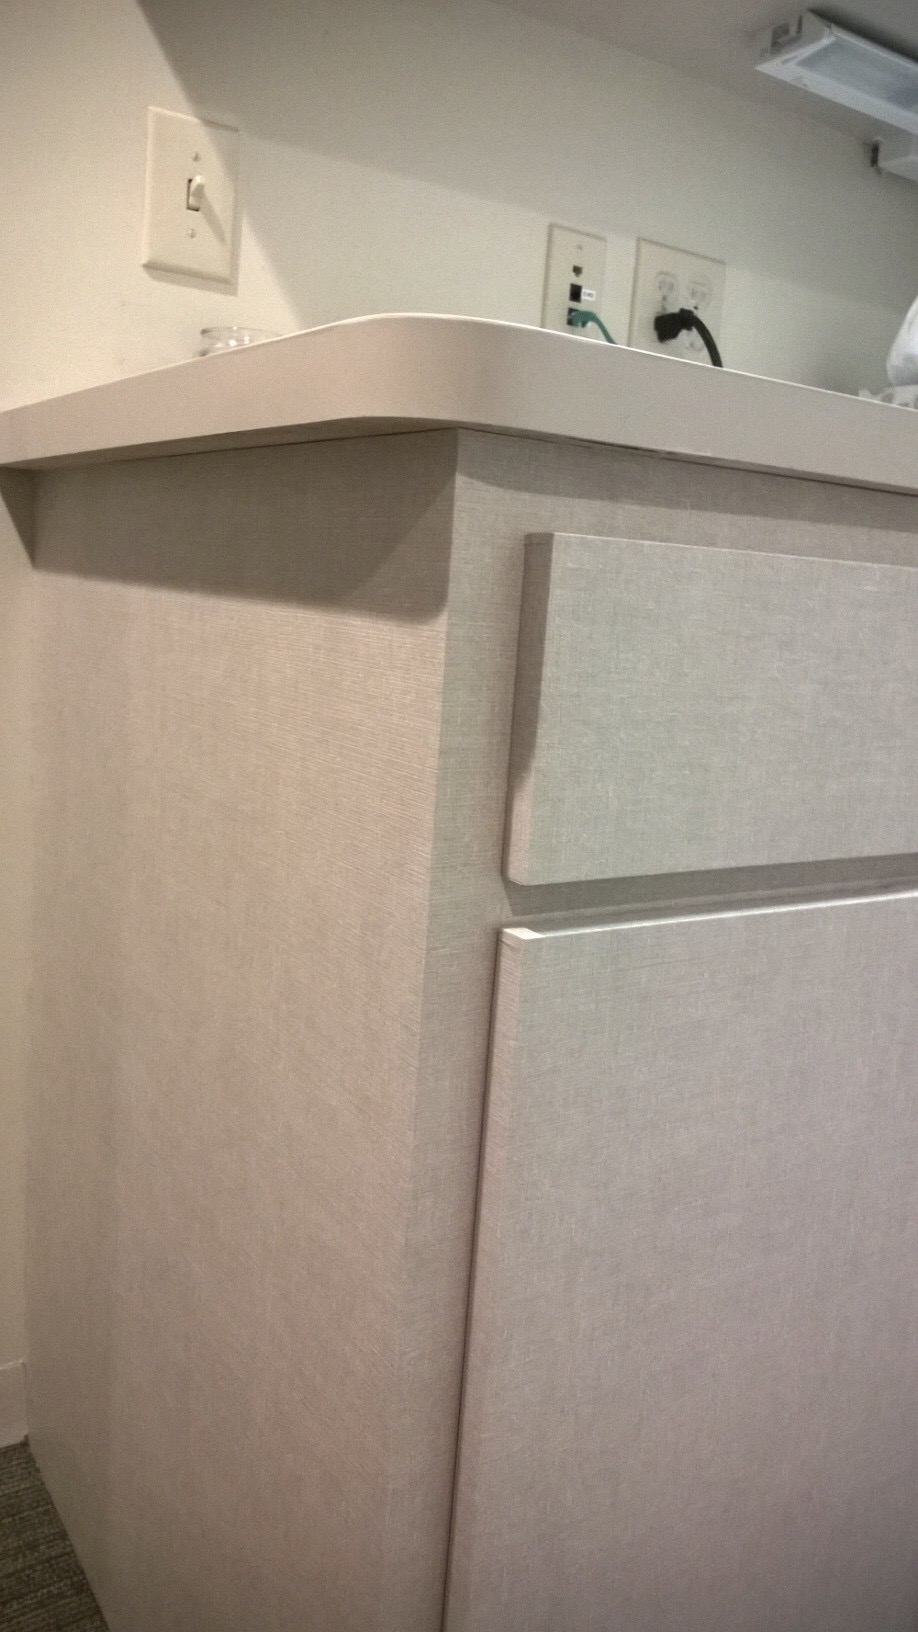 Install of DesignTex DiNoc product over existing cabinets and tops. Specified by IIS, installed by Who Did That, Inc.